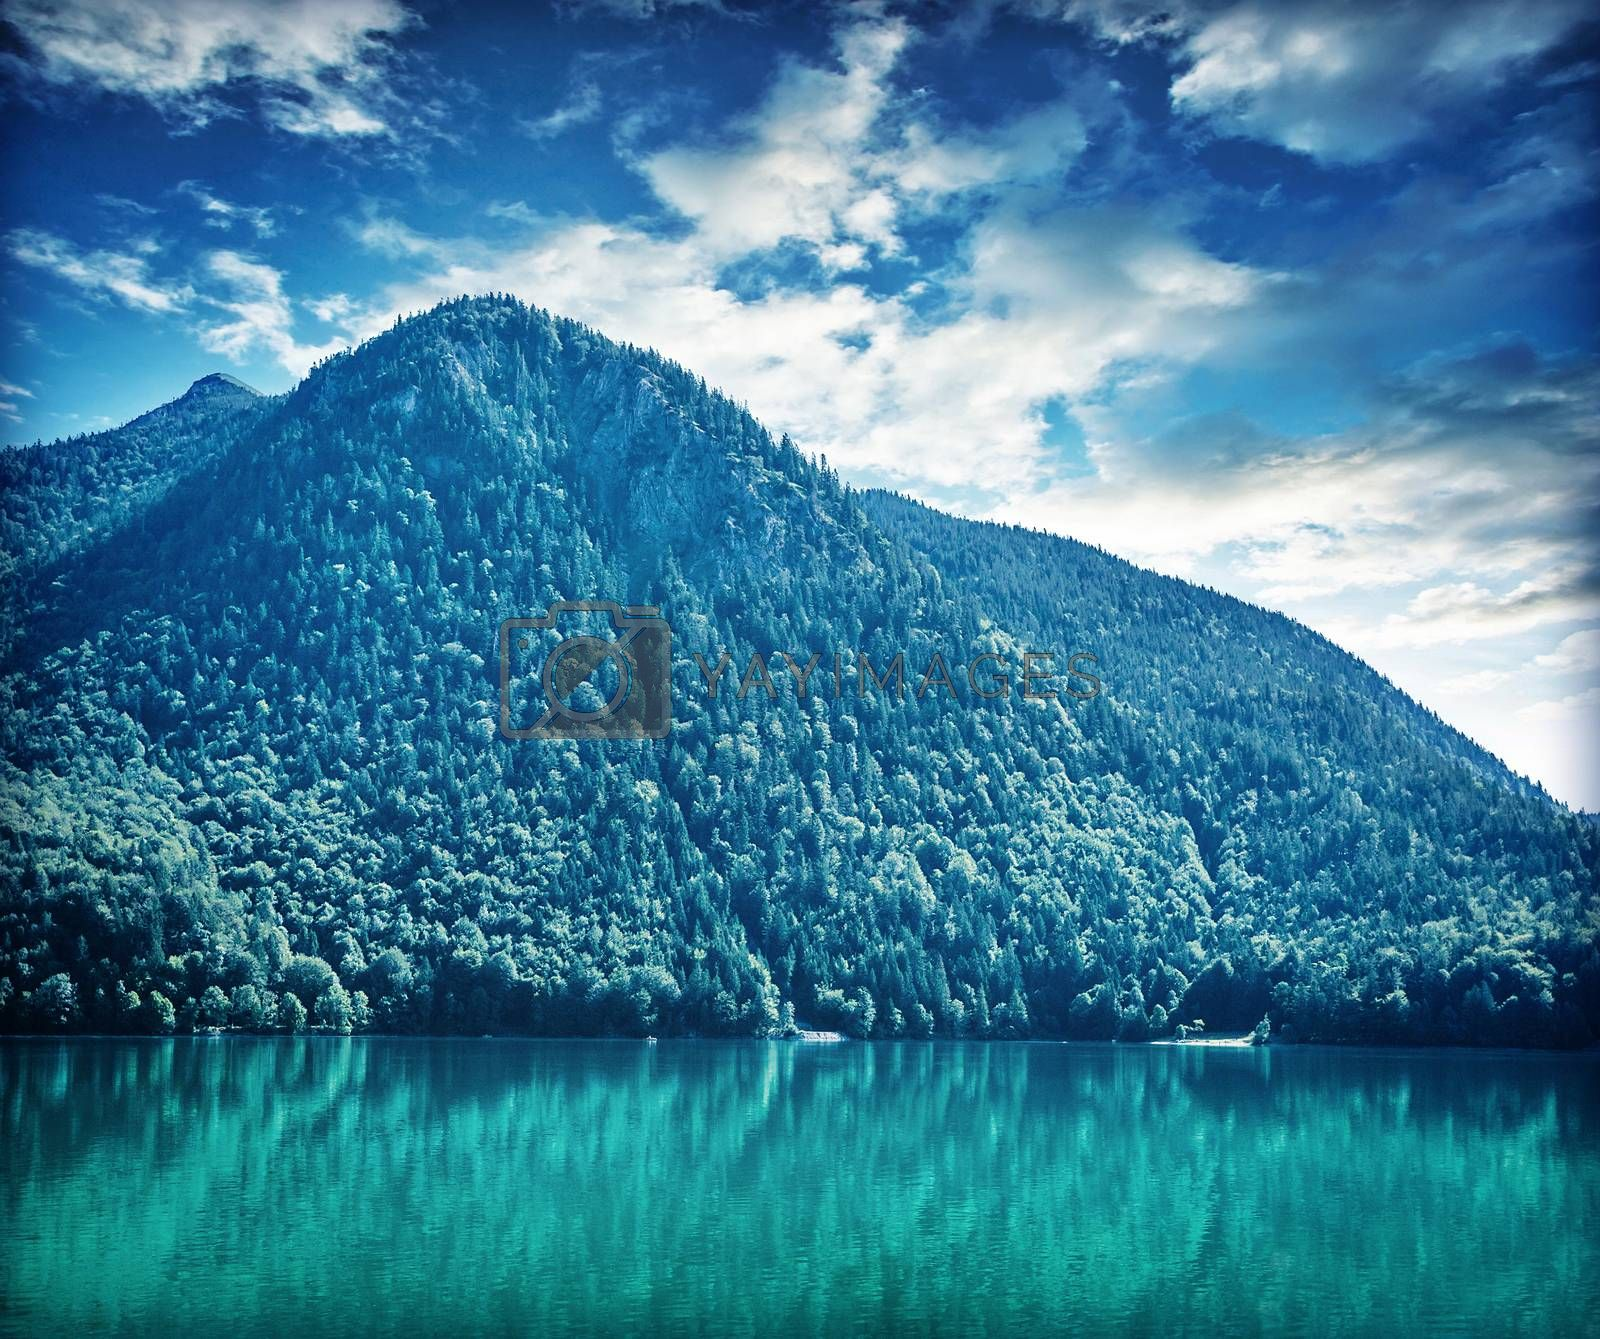 Beautiful landscape of great mountain covered with thick pine forest over lake, amazing panoramic scene of Alps, Austria, Europe